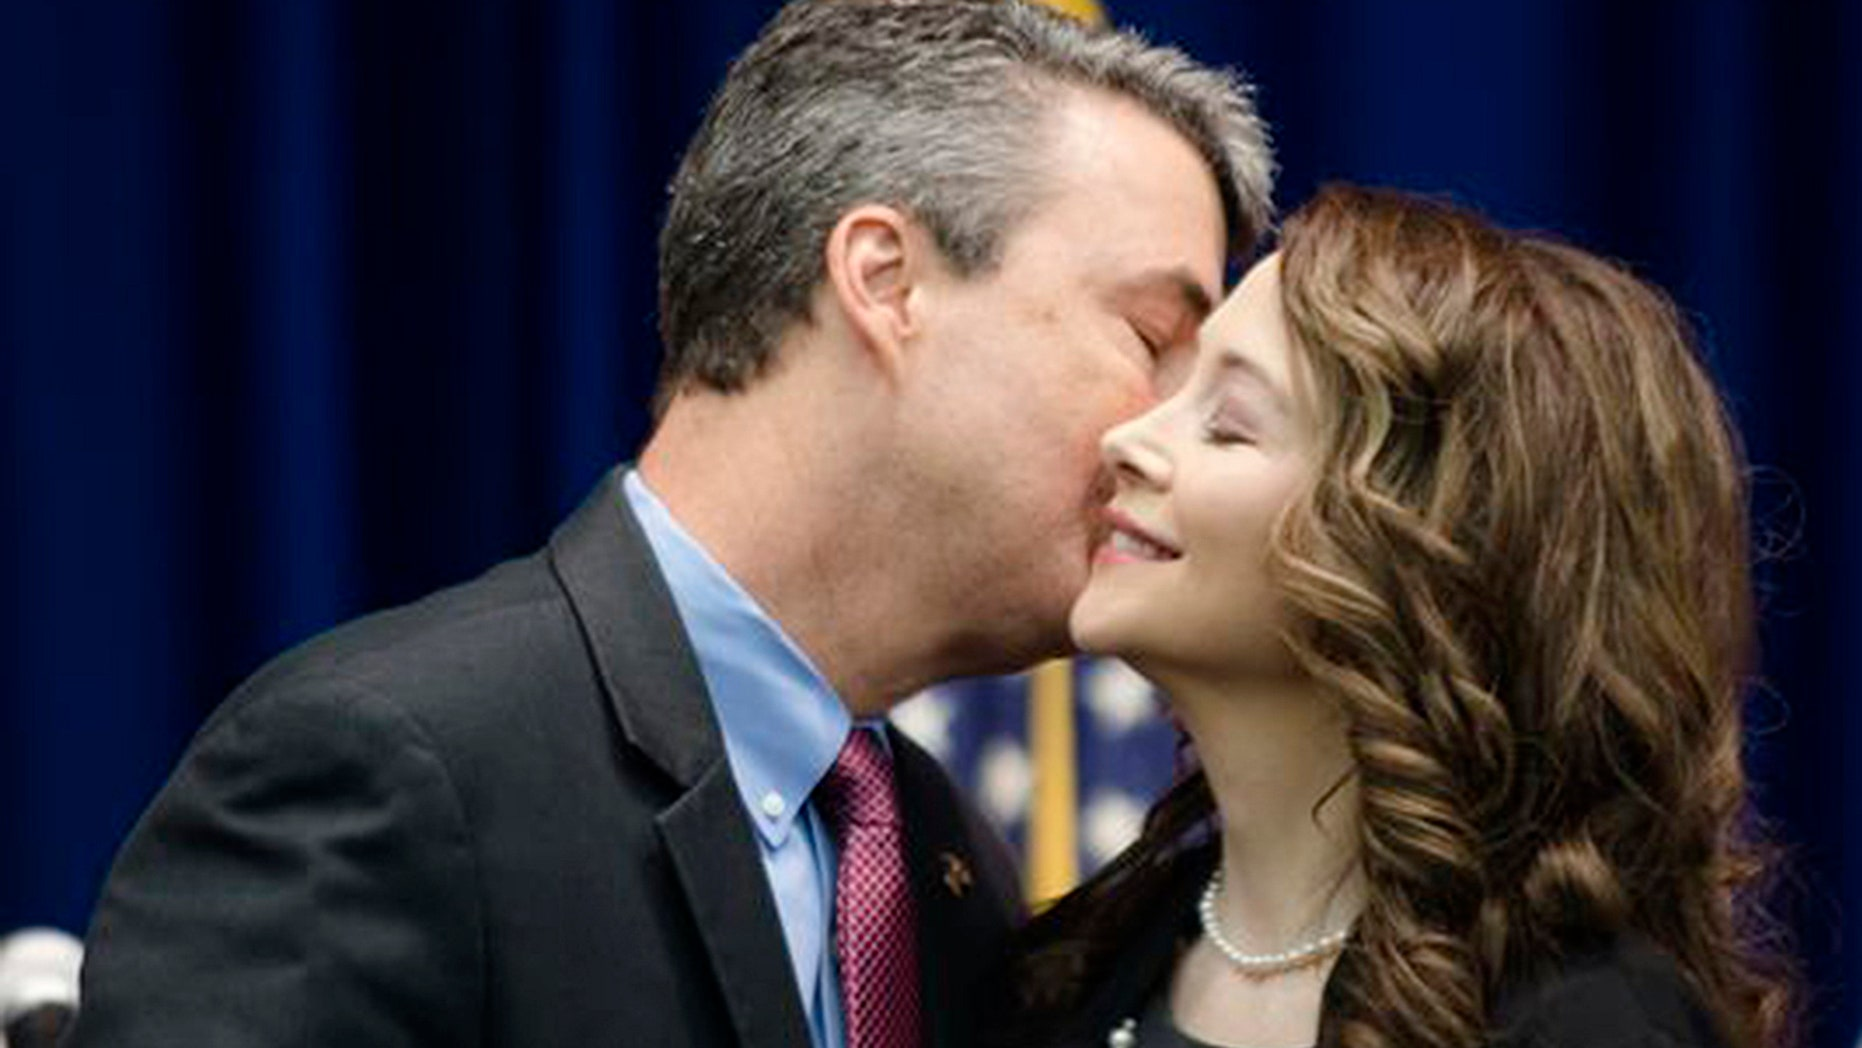 Alabama Attorney General Steve Marshall Shares Details On Wife S Mental Illness